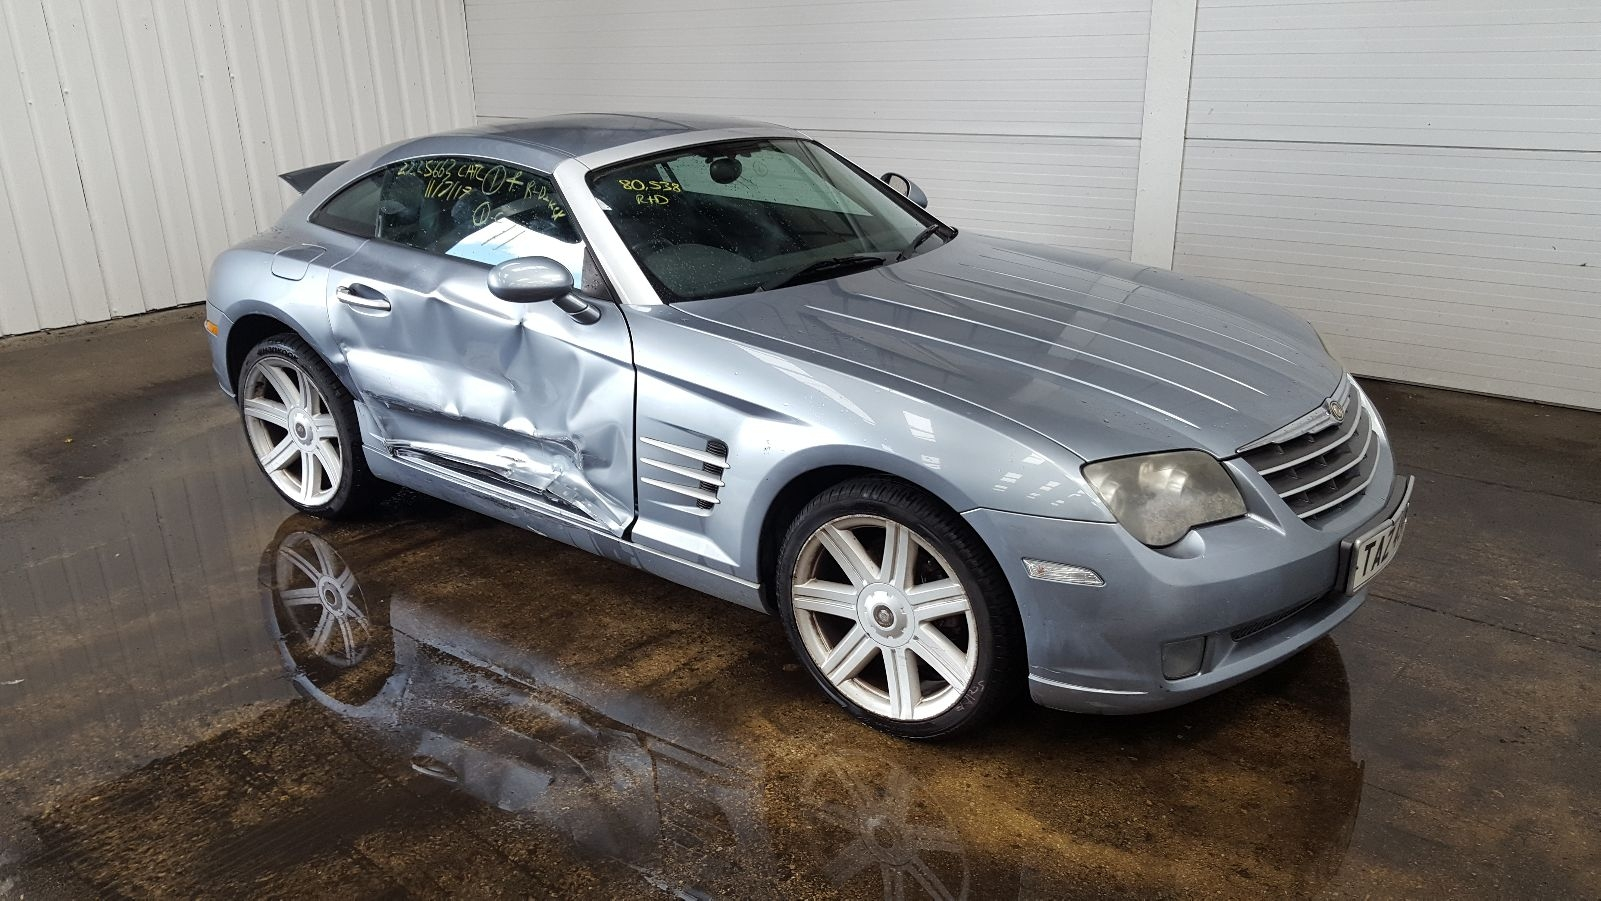 Image for a 2004 Chrysler Crossfire 3.2 Petrol EGX Engine